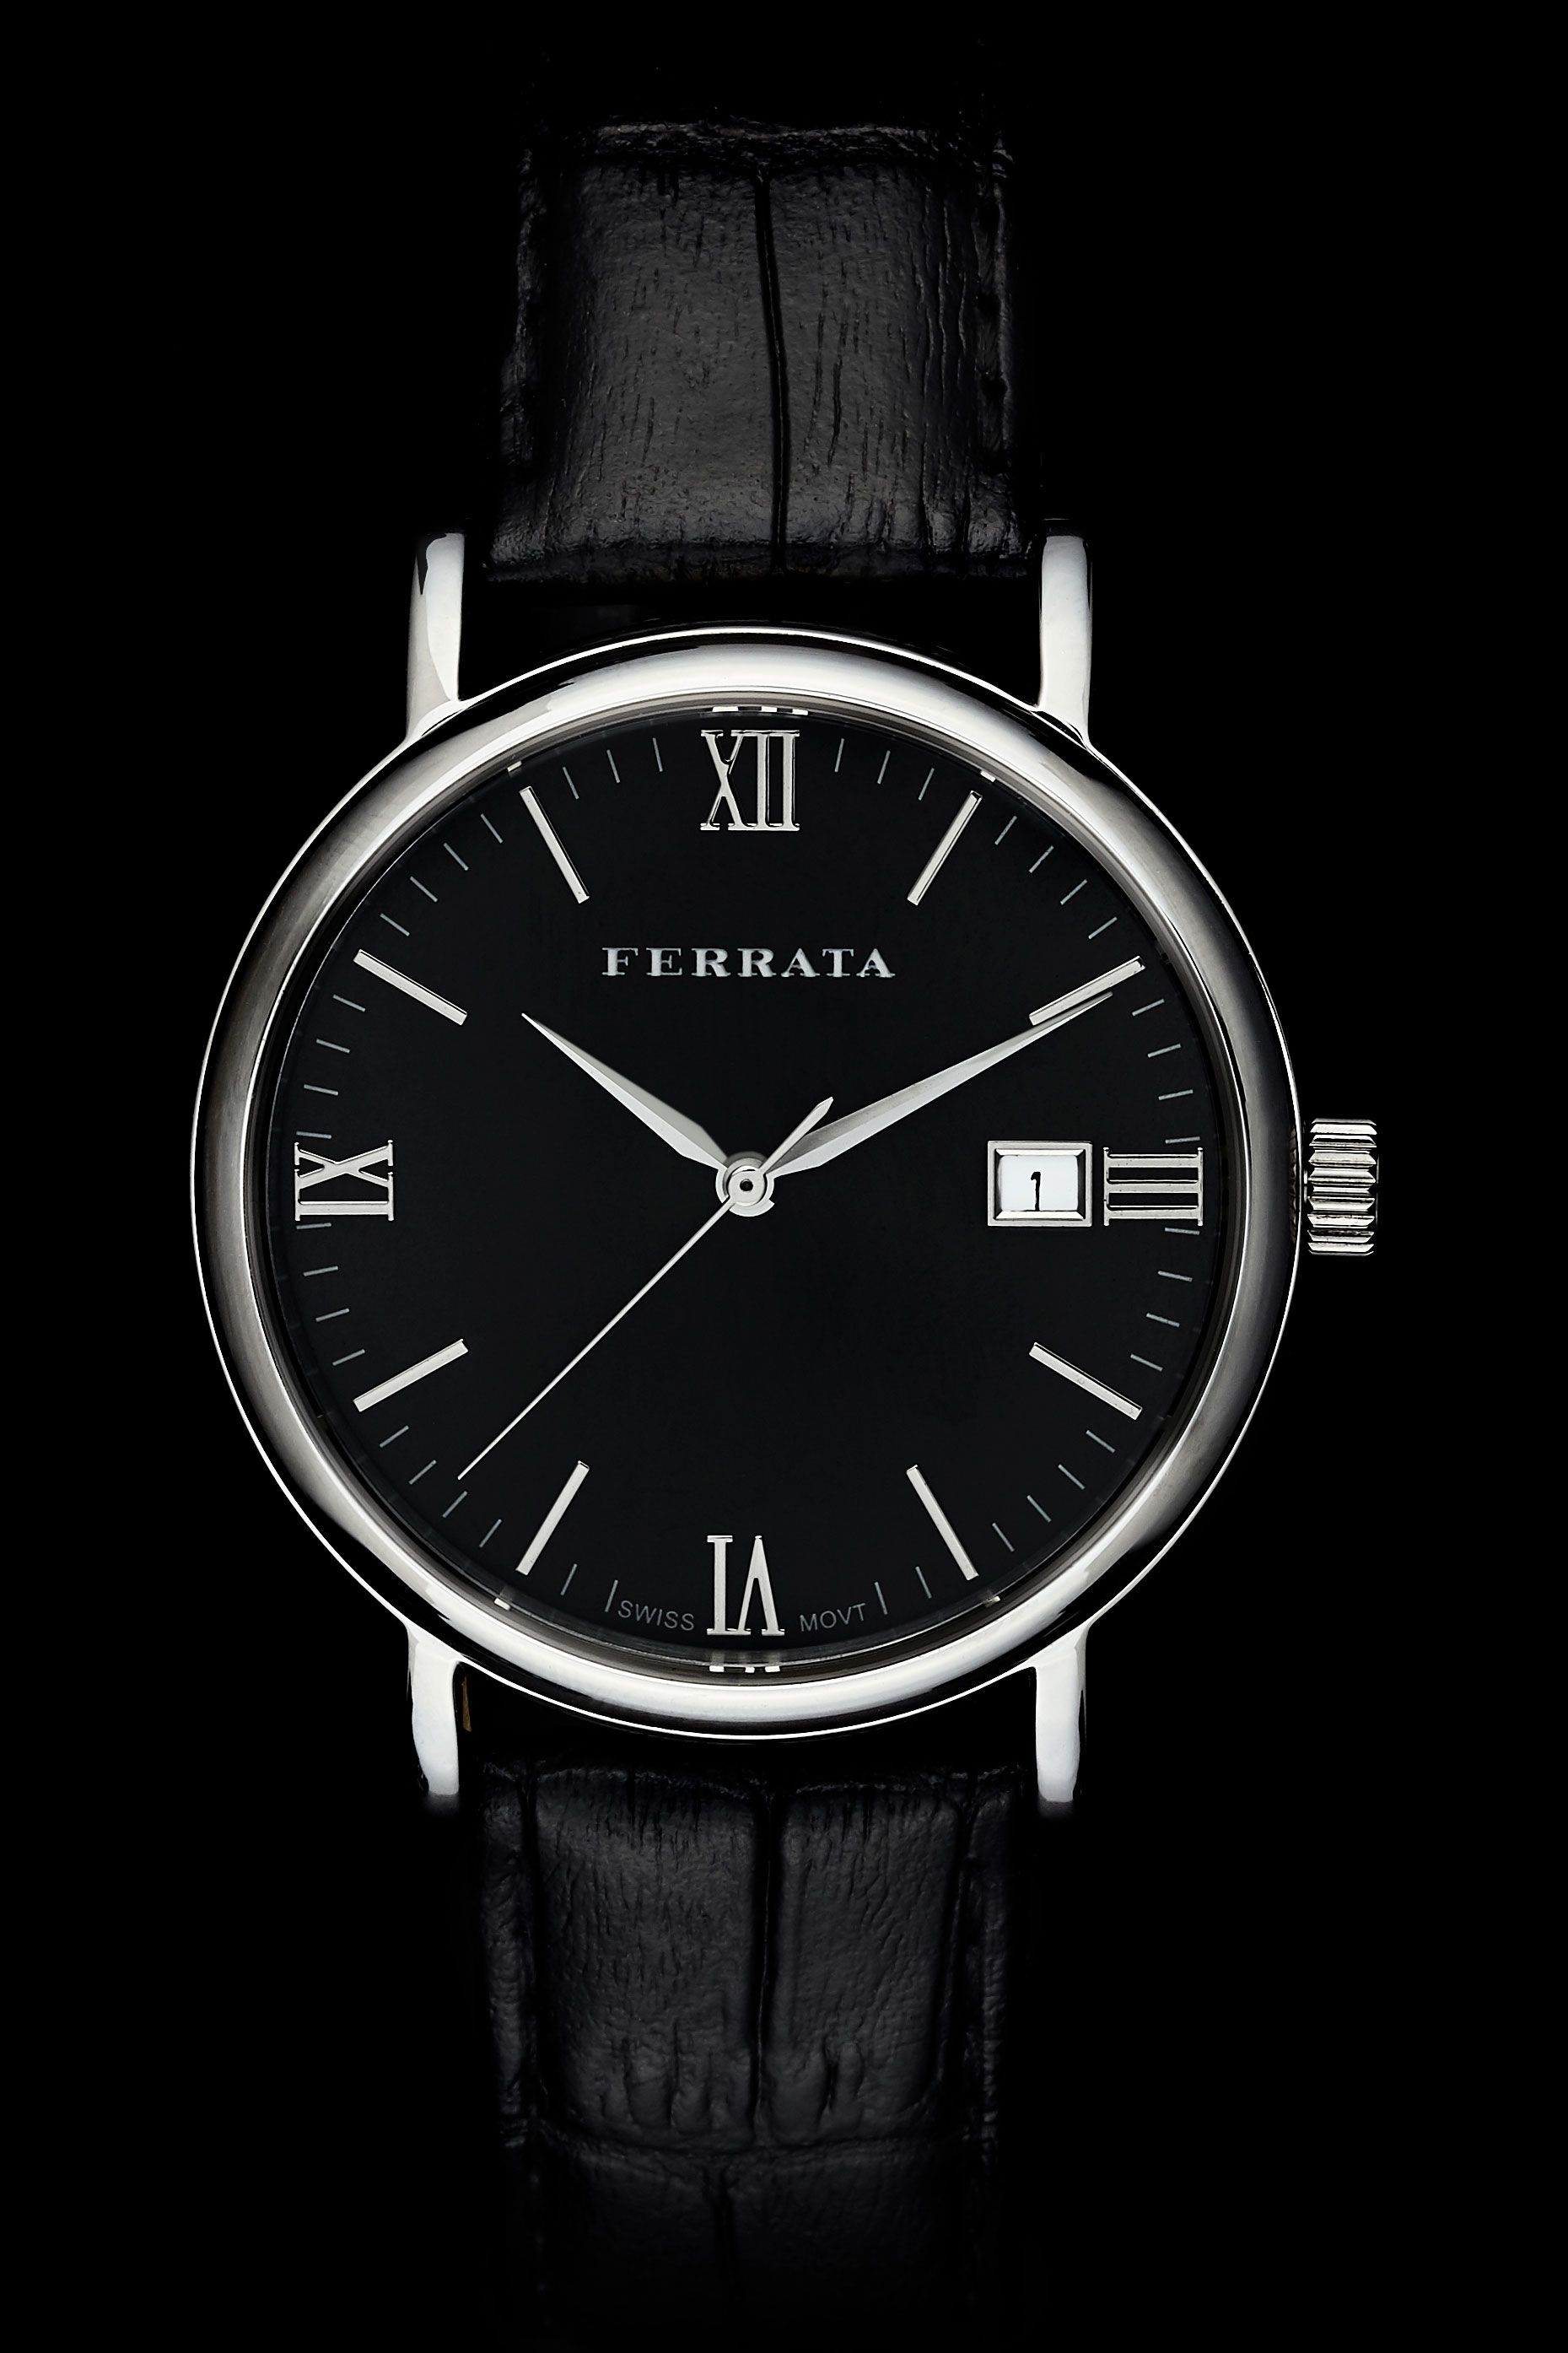 ferrata watch